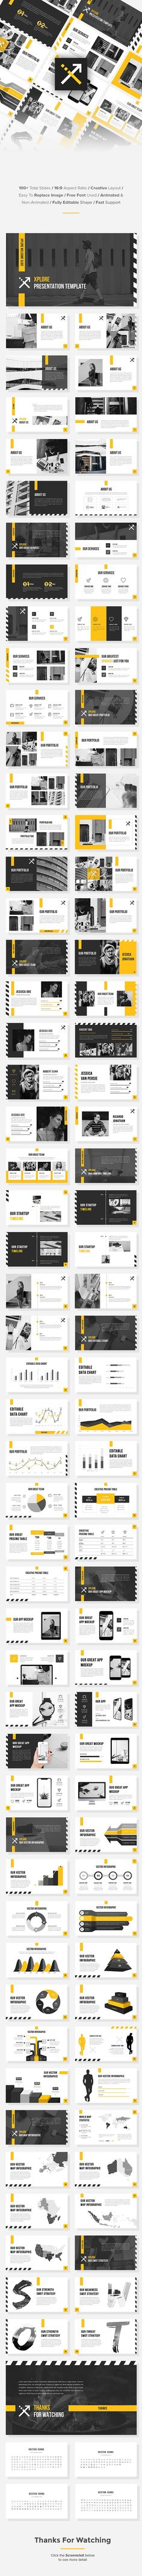 XPlore - StartUp PowerPoint Template - Pitch Deck PowerPoint Templates